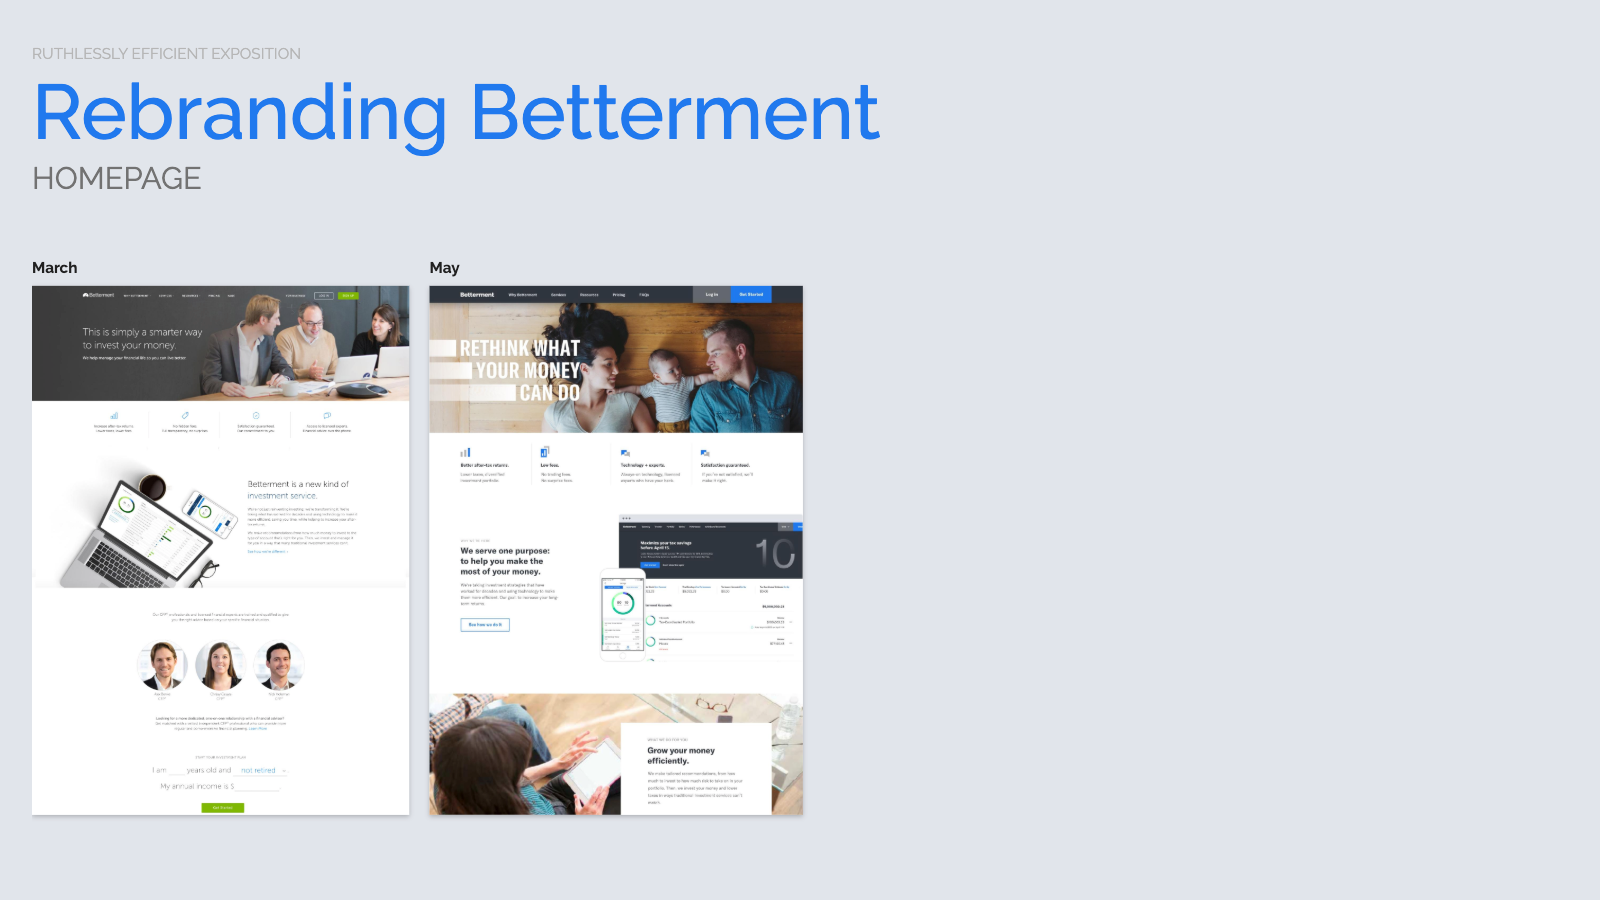 Slide content, Betterment homepage redesign, proposed before and after